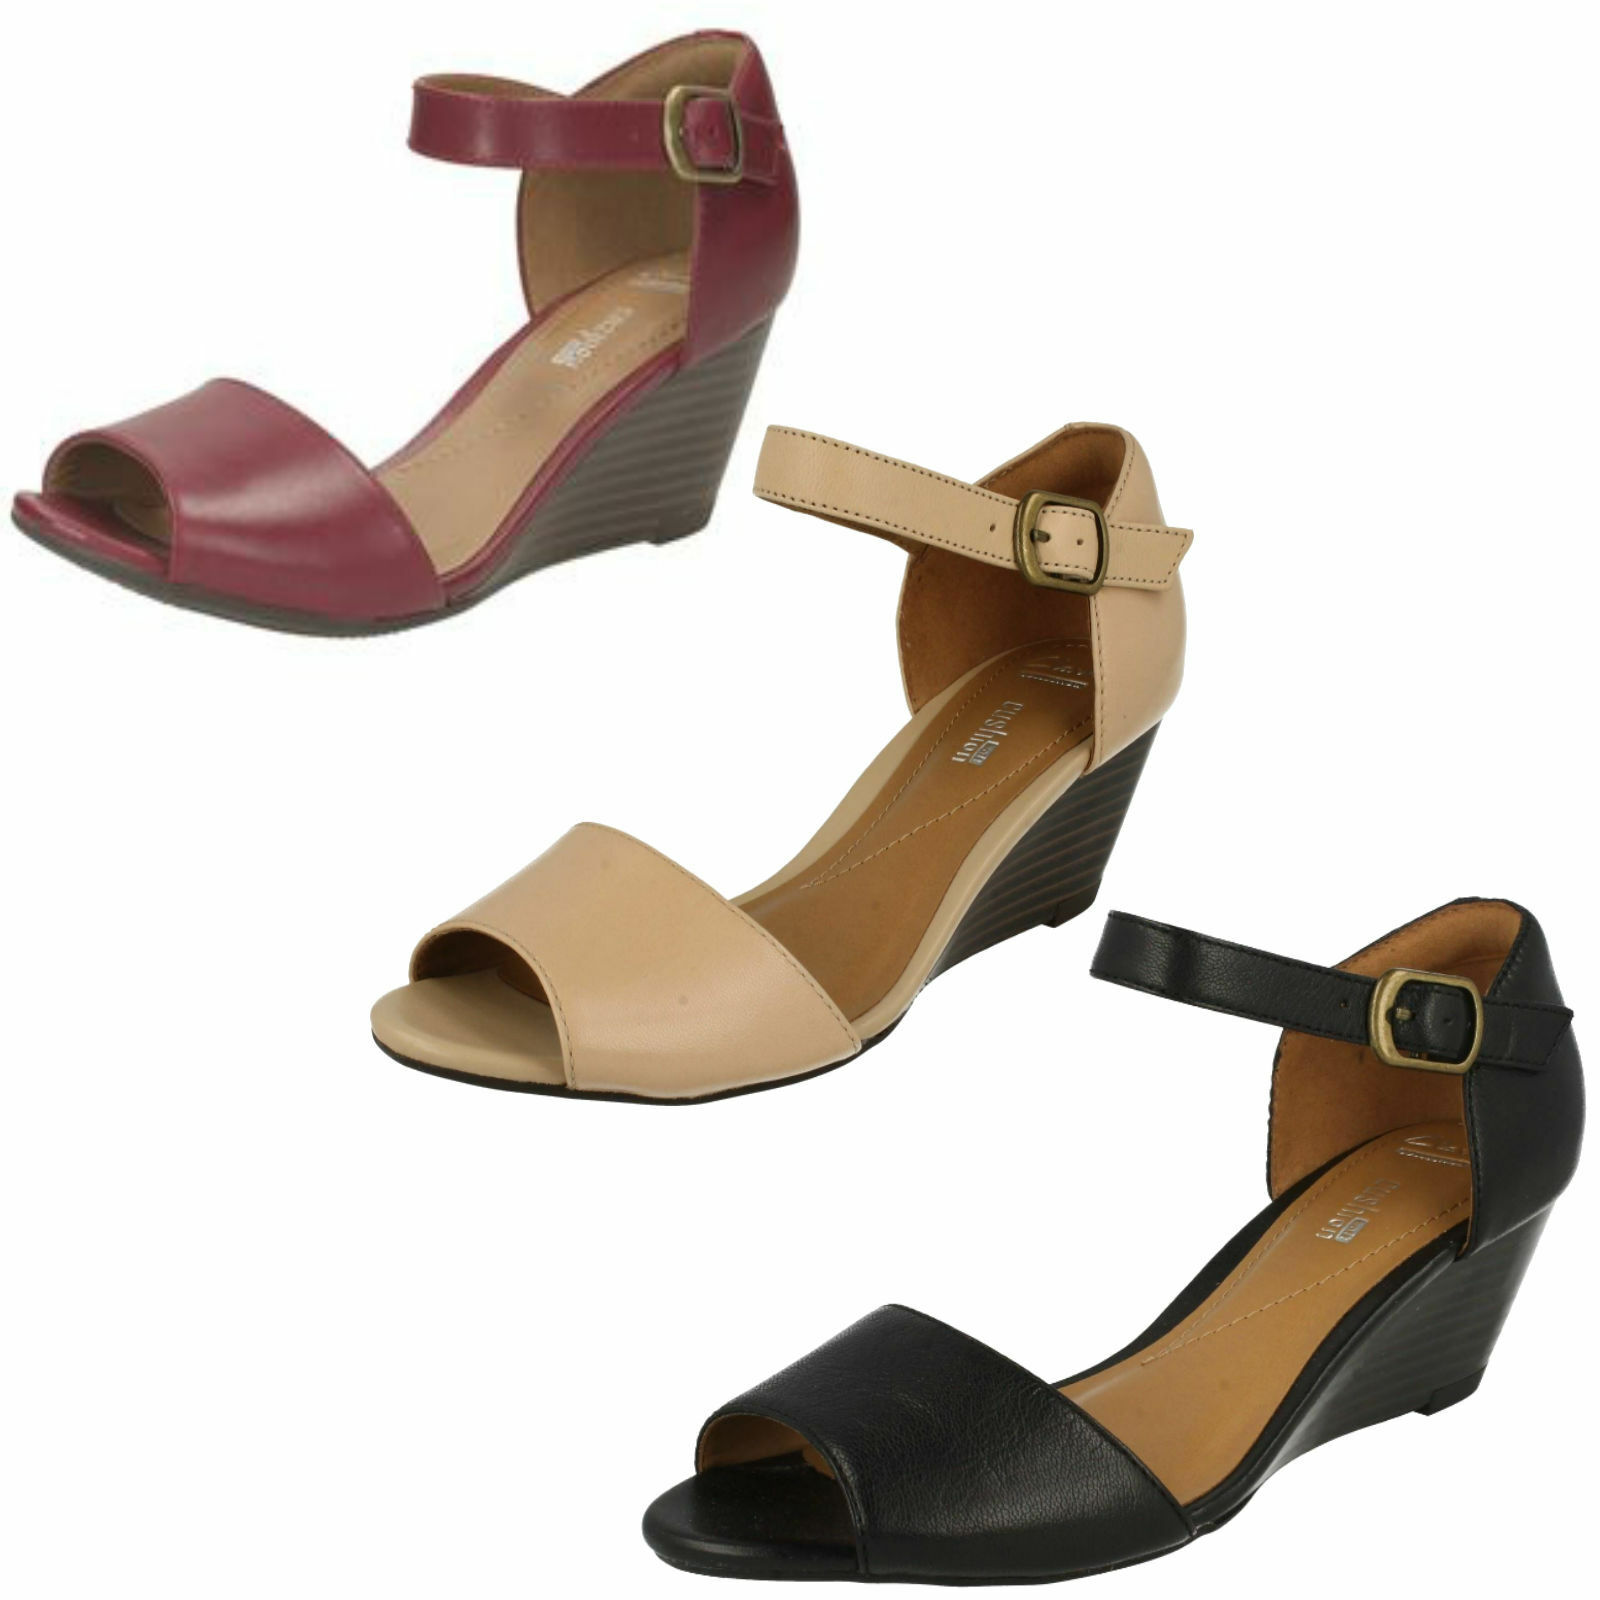 Ladies Clarks Smart Sandals Wedge Heel Brielle Drive Black or Cherry or Nude